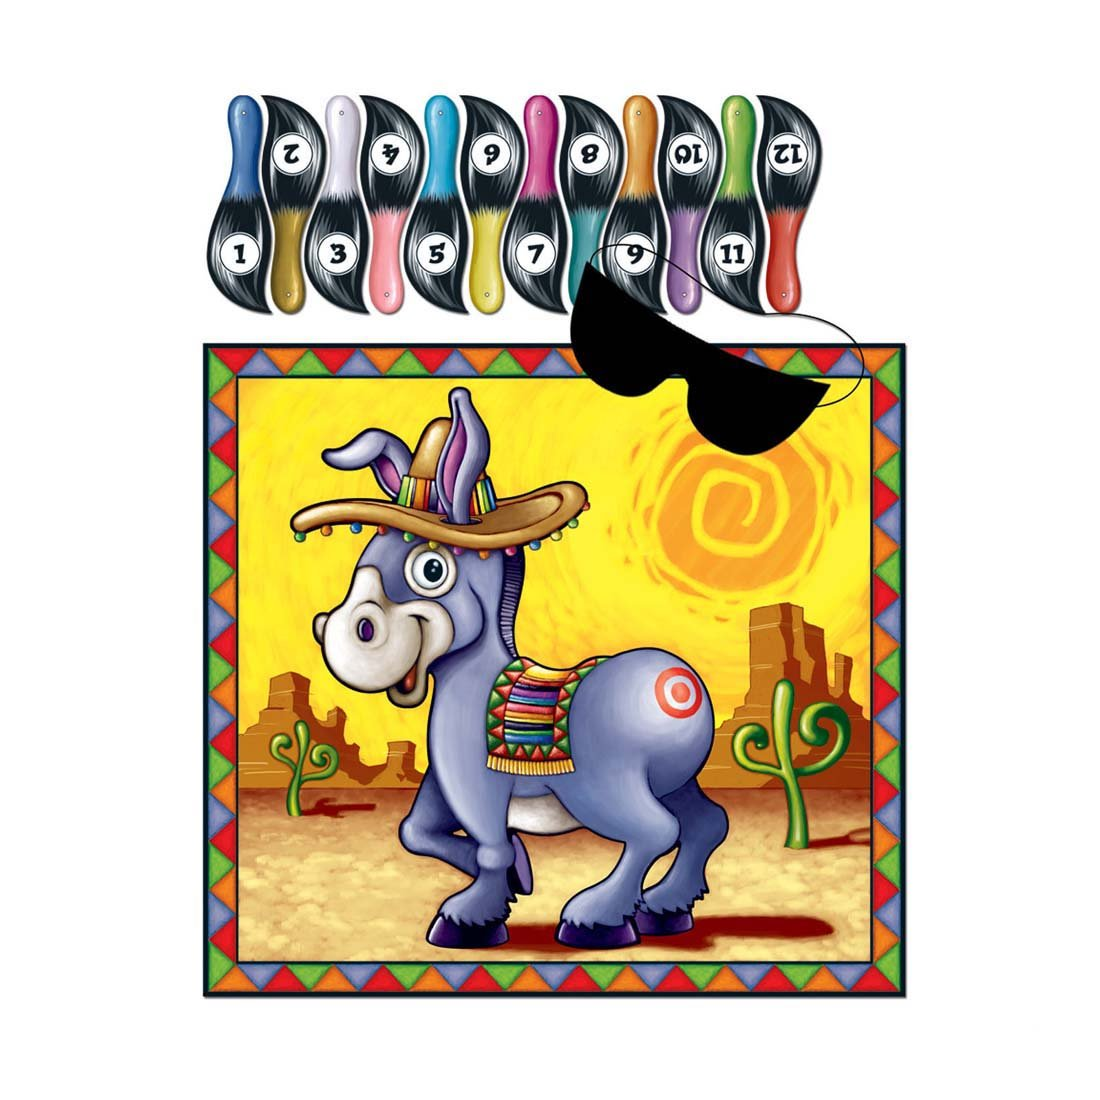 1 Everyday Birthday Party Game PIN THE TAIL ON THE DONKEY for 12 Guests